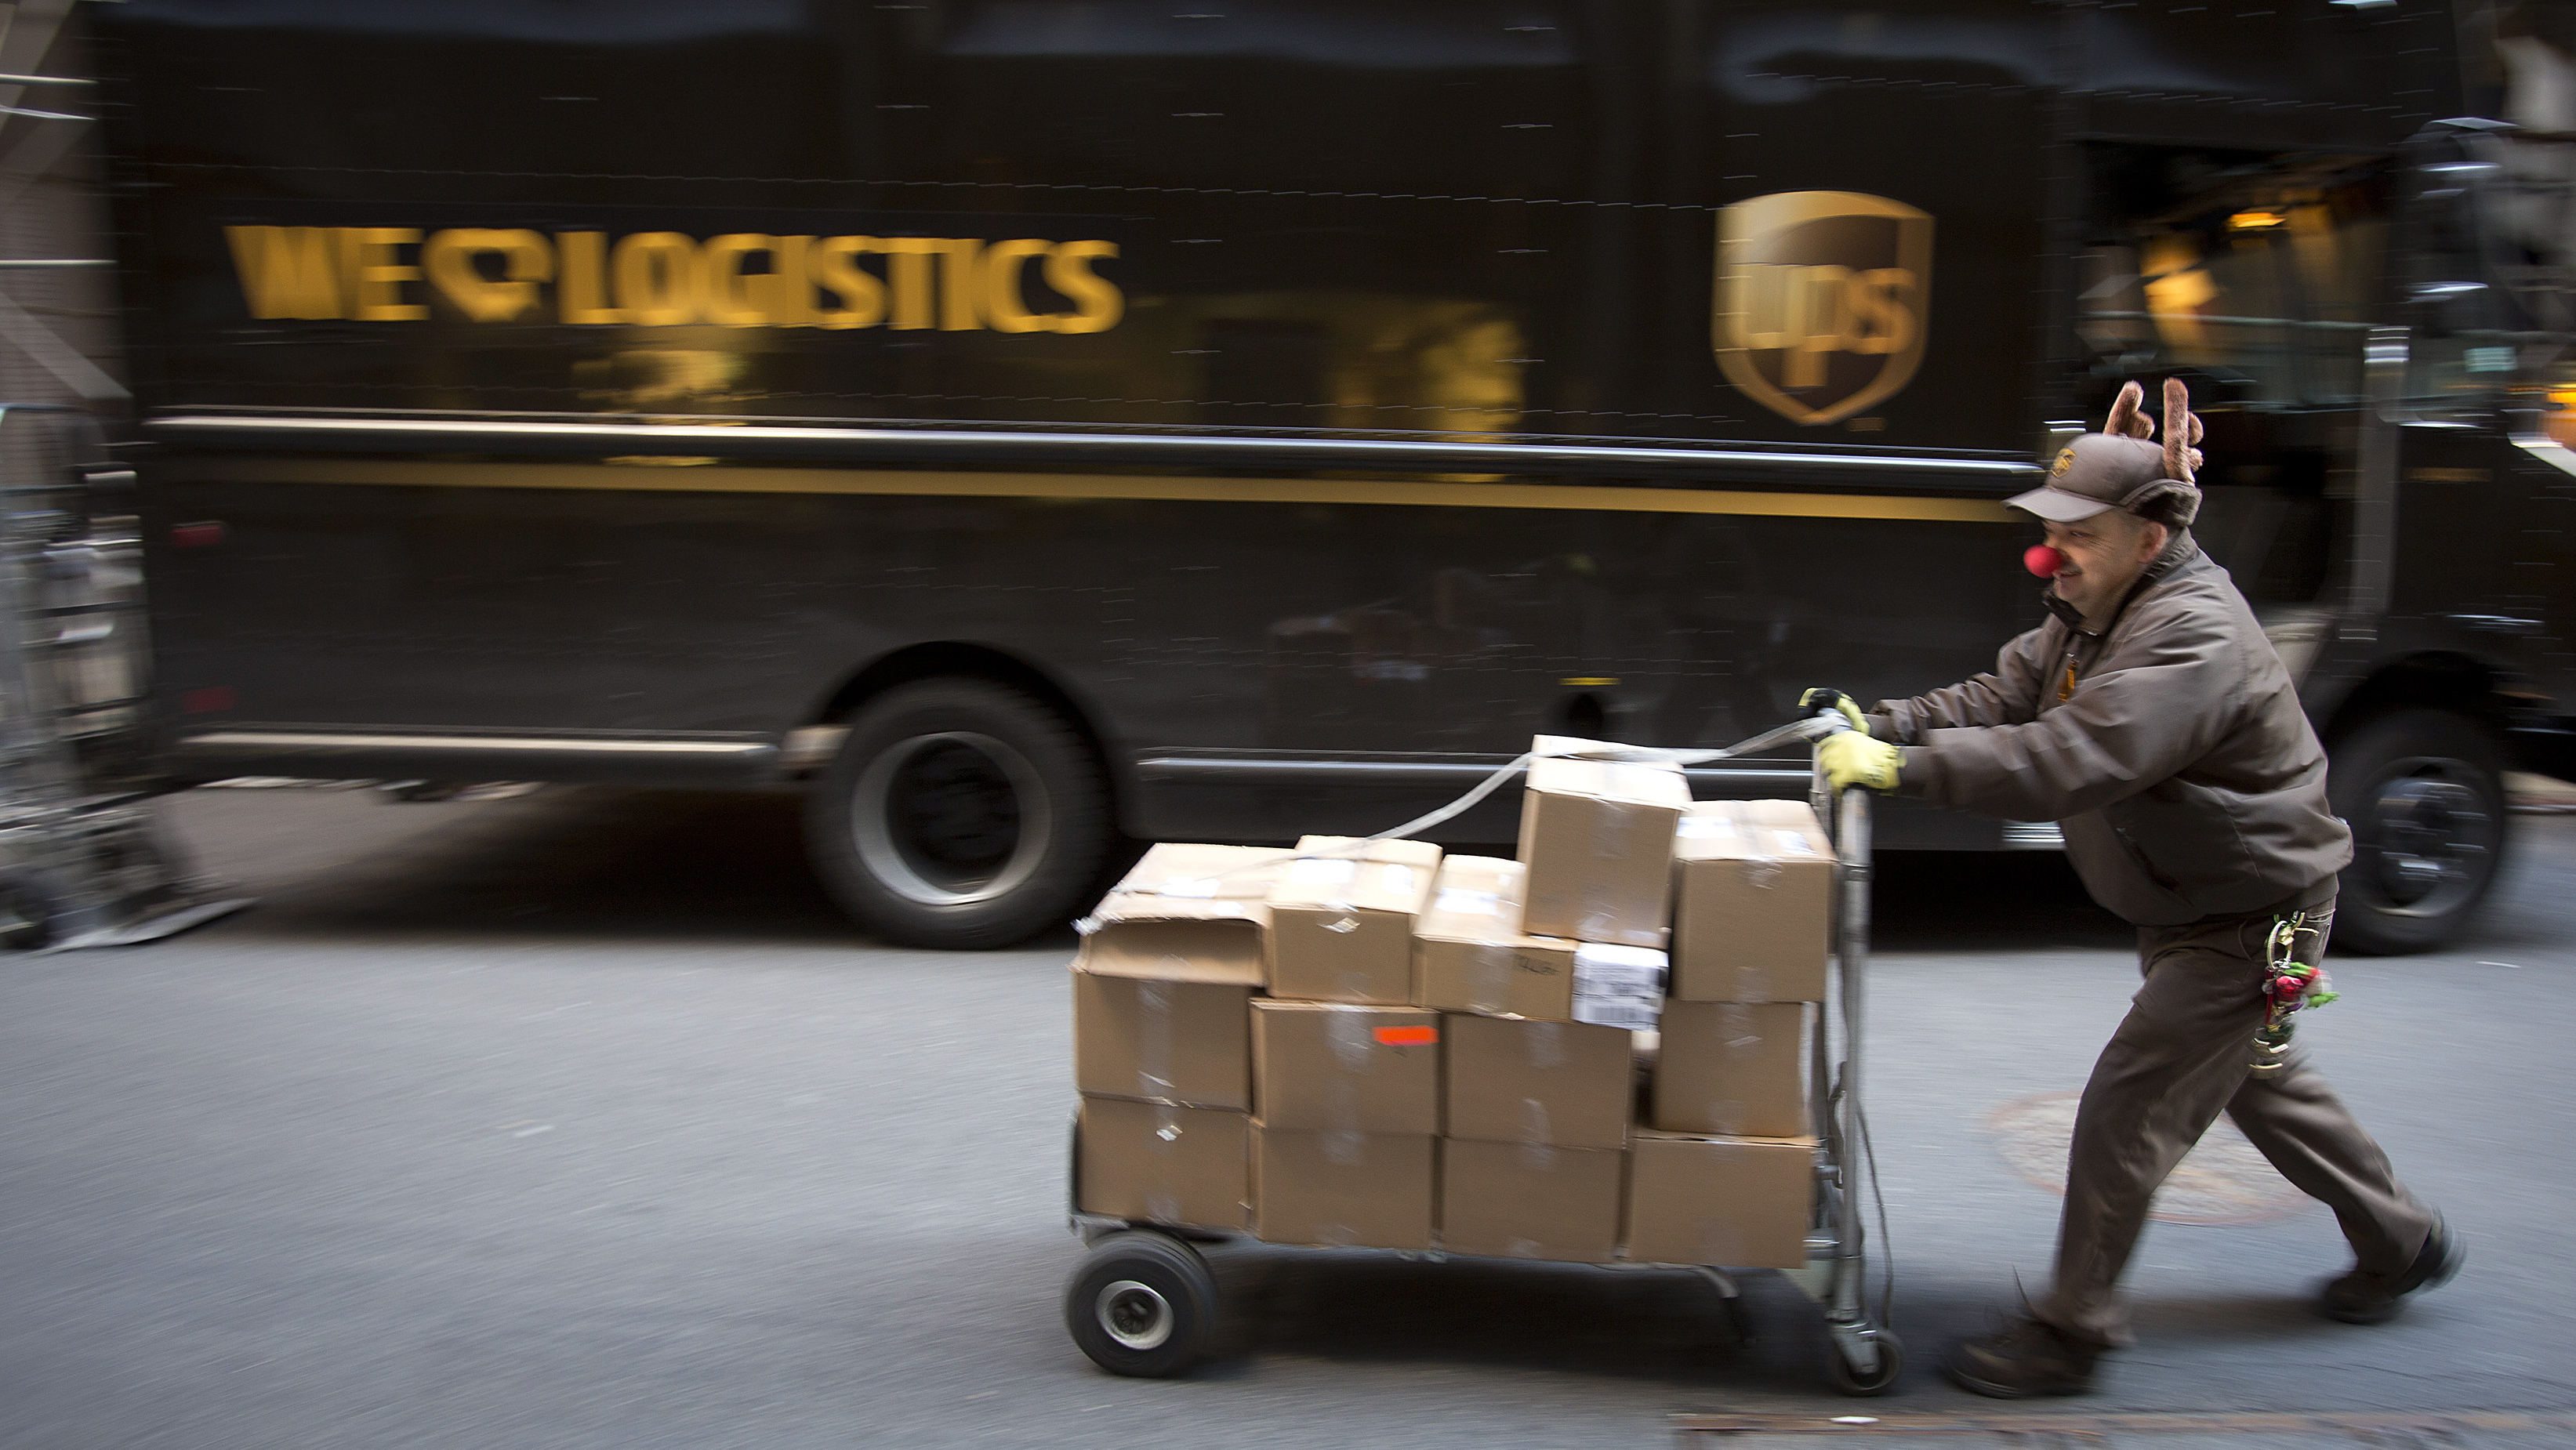 Ups Delivery Apologies, Promises Fr...